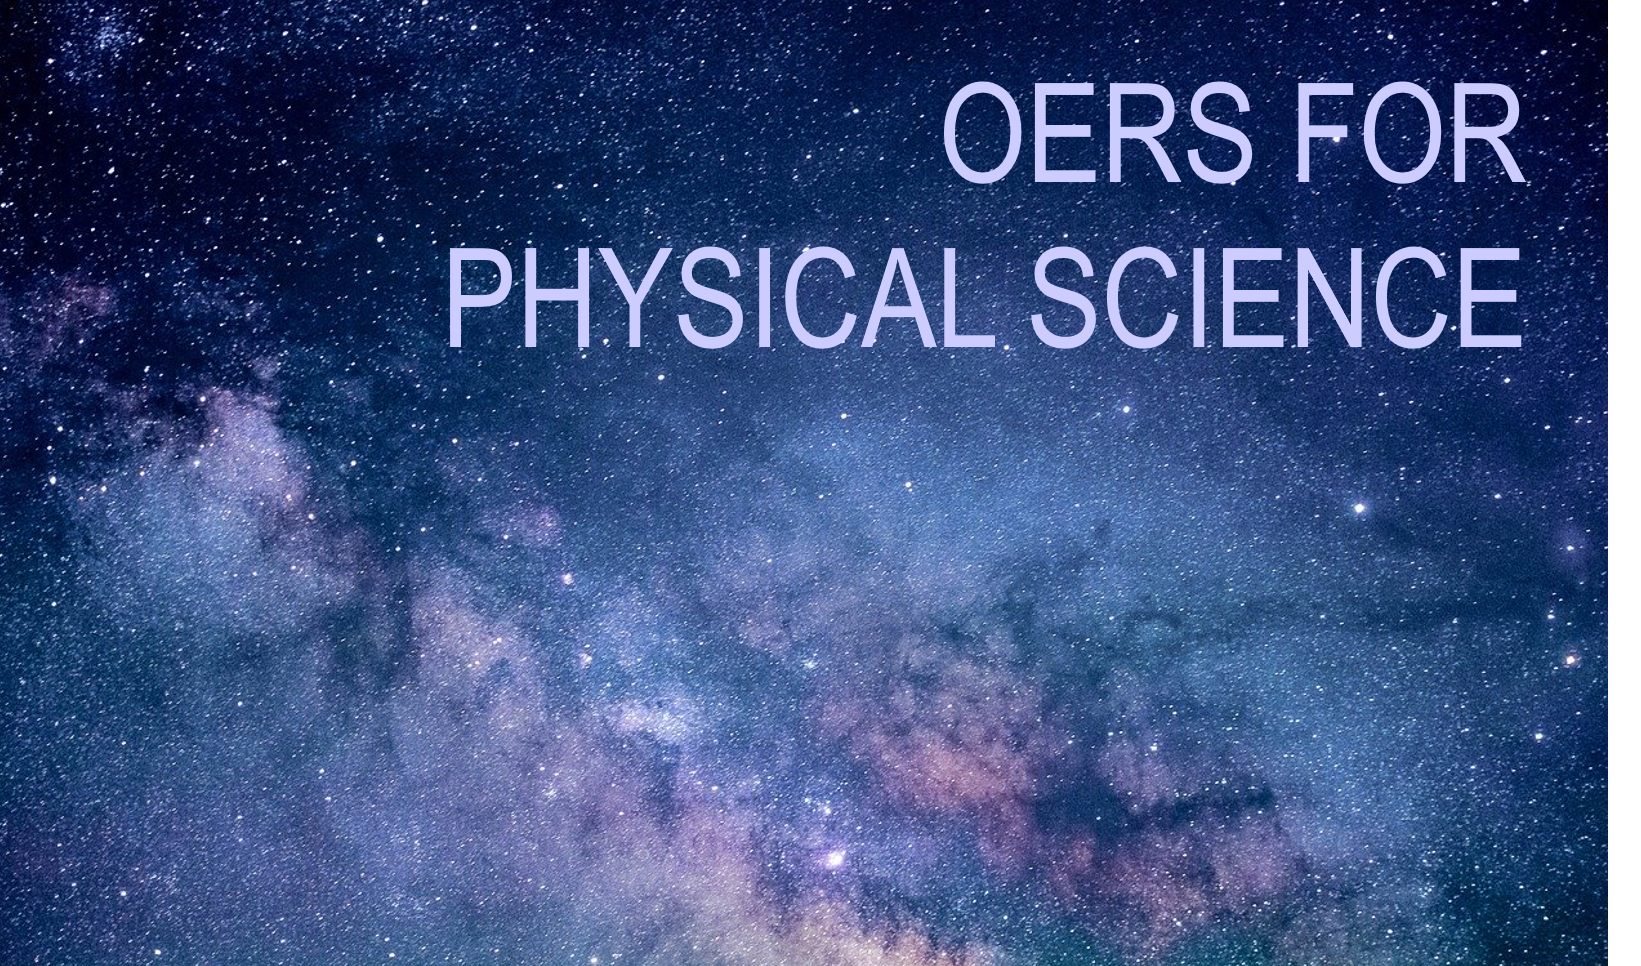 OER's for Physical Science